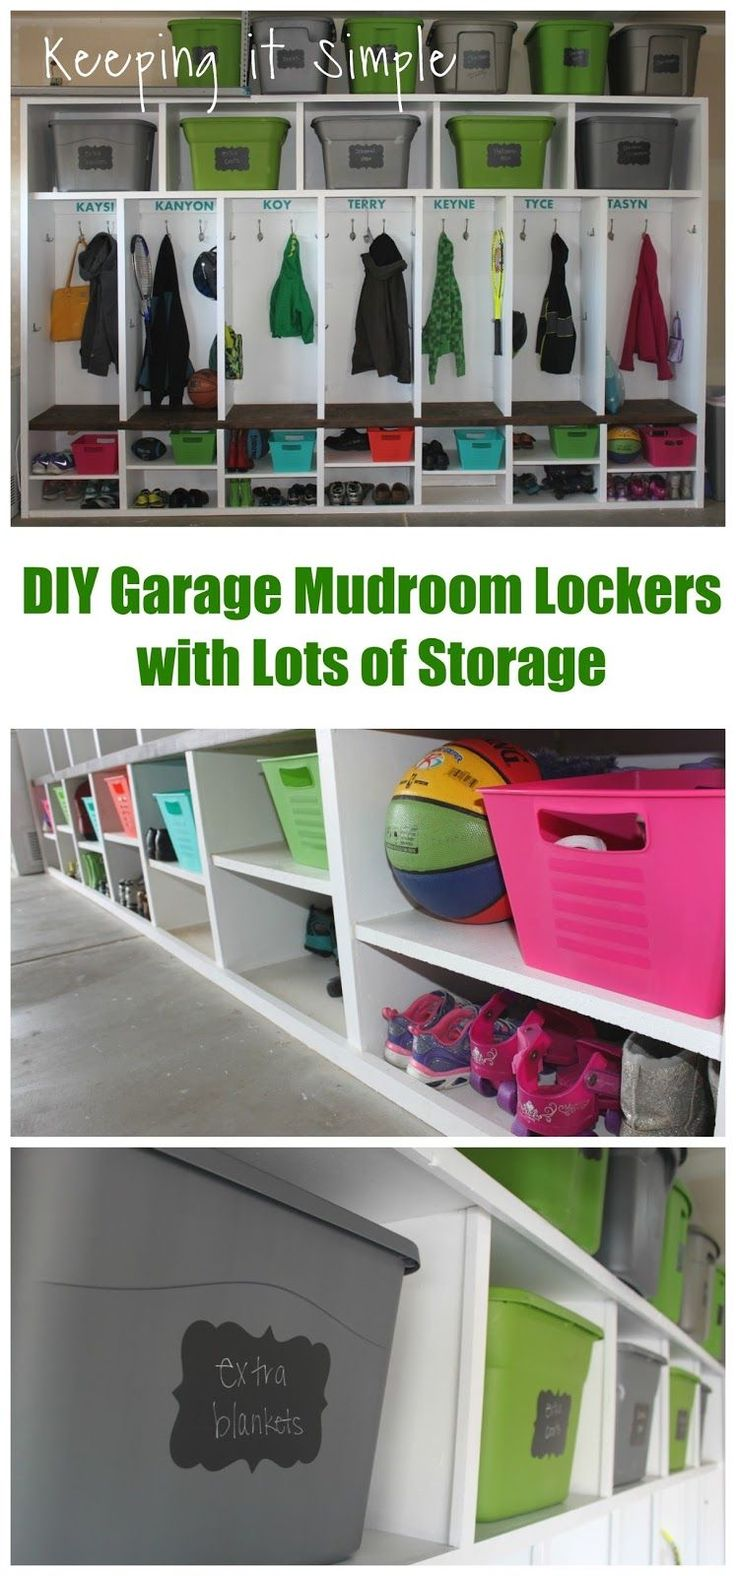 Garage garage organization via a bowl full of lemons the white bins - Diy Garage Mudroom Lockers With Lots Of Storage For Totes And Containers